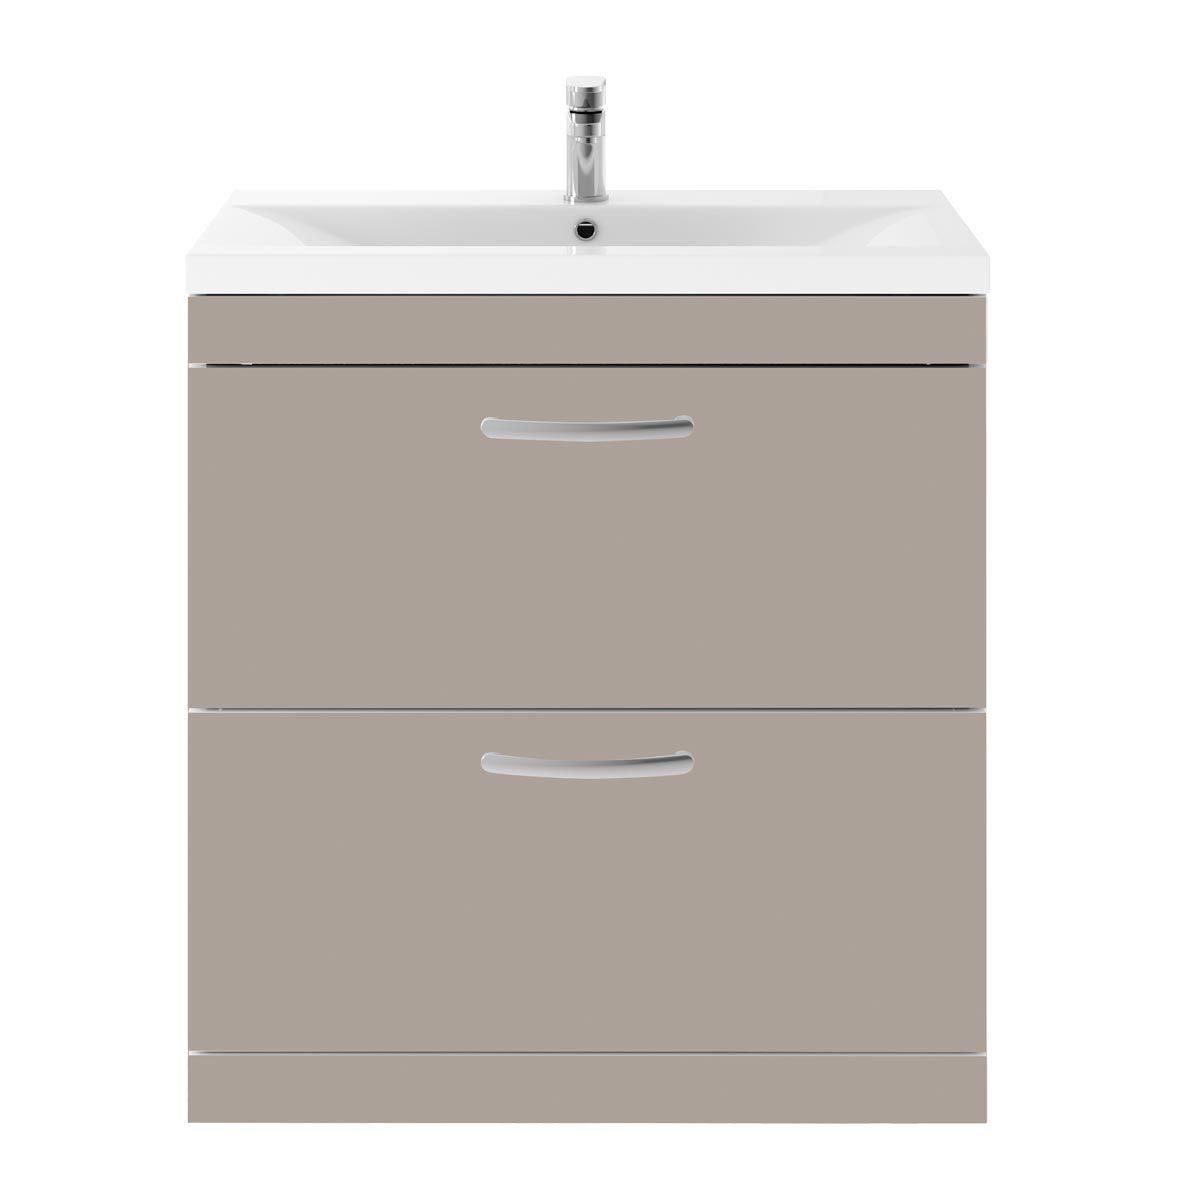 Nuie Athena Stone Grey 2 Drawer Floor Standing Vanity Unit with 40mm Profile Basin 800mm